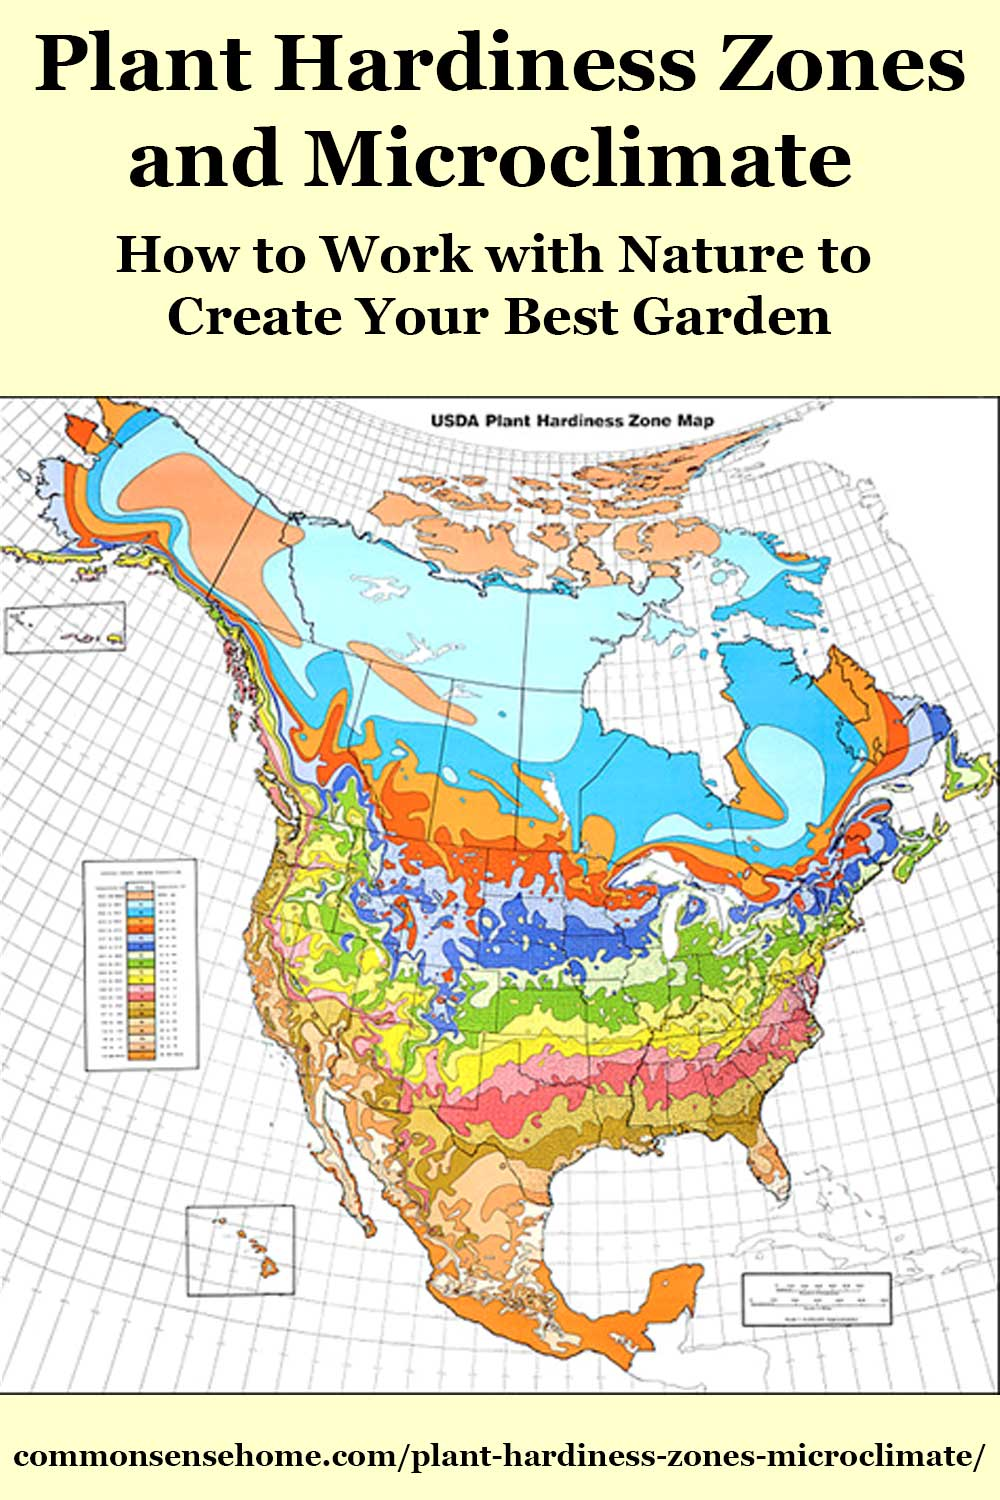 plant hardiness zones map for North America